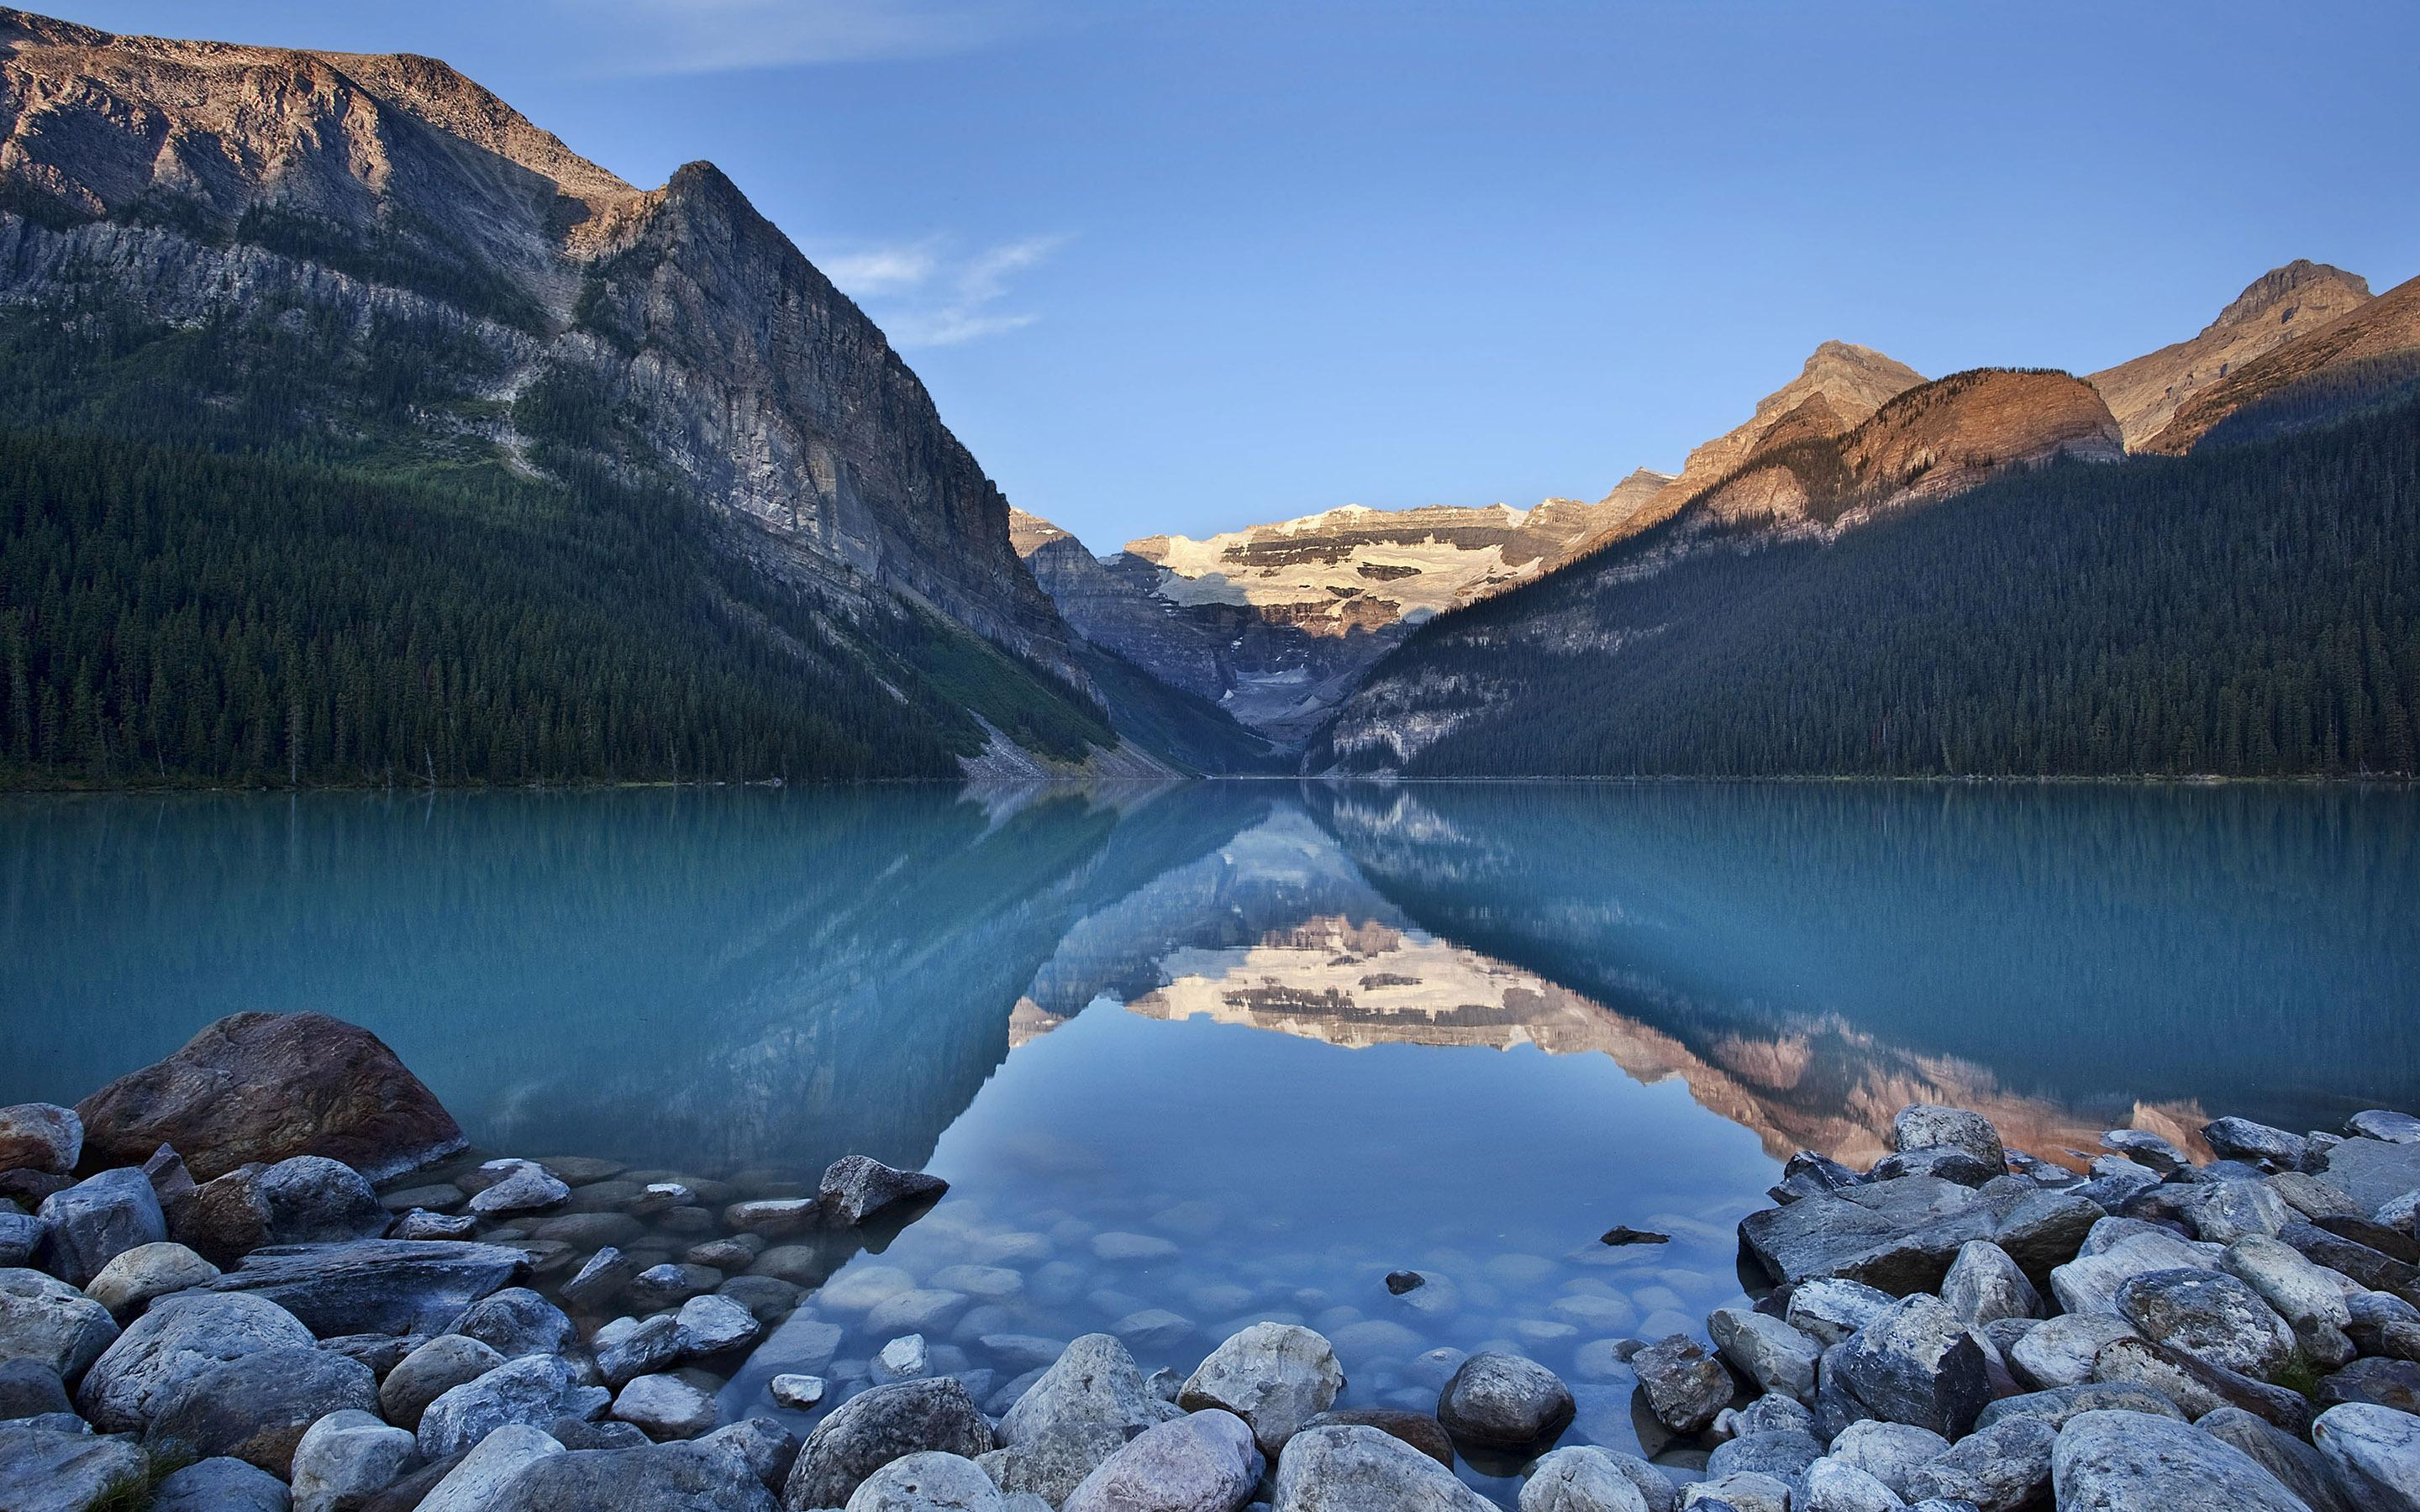 Free 3d Moving Wallpapers For Desktop Hd Calm Blue River In The Mountains Wallpaper Download